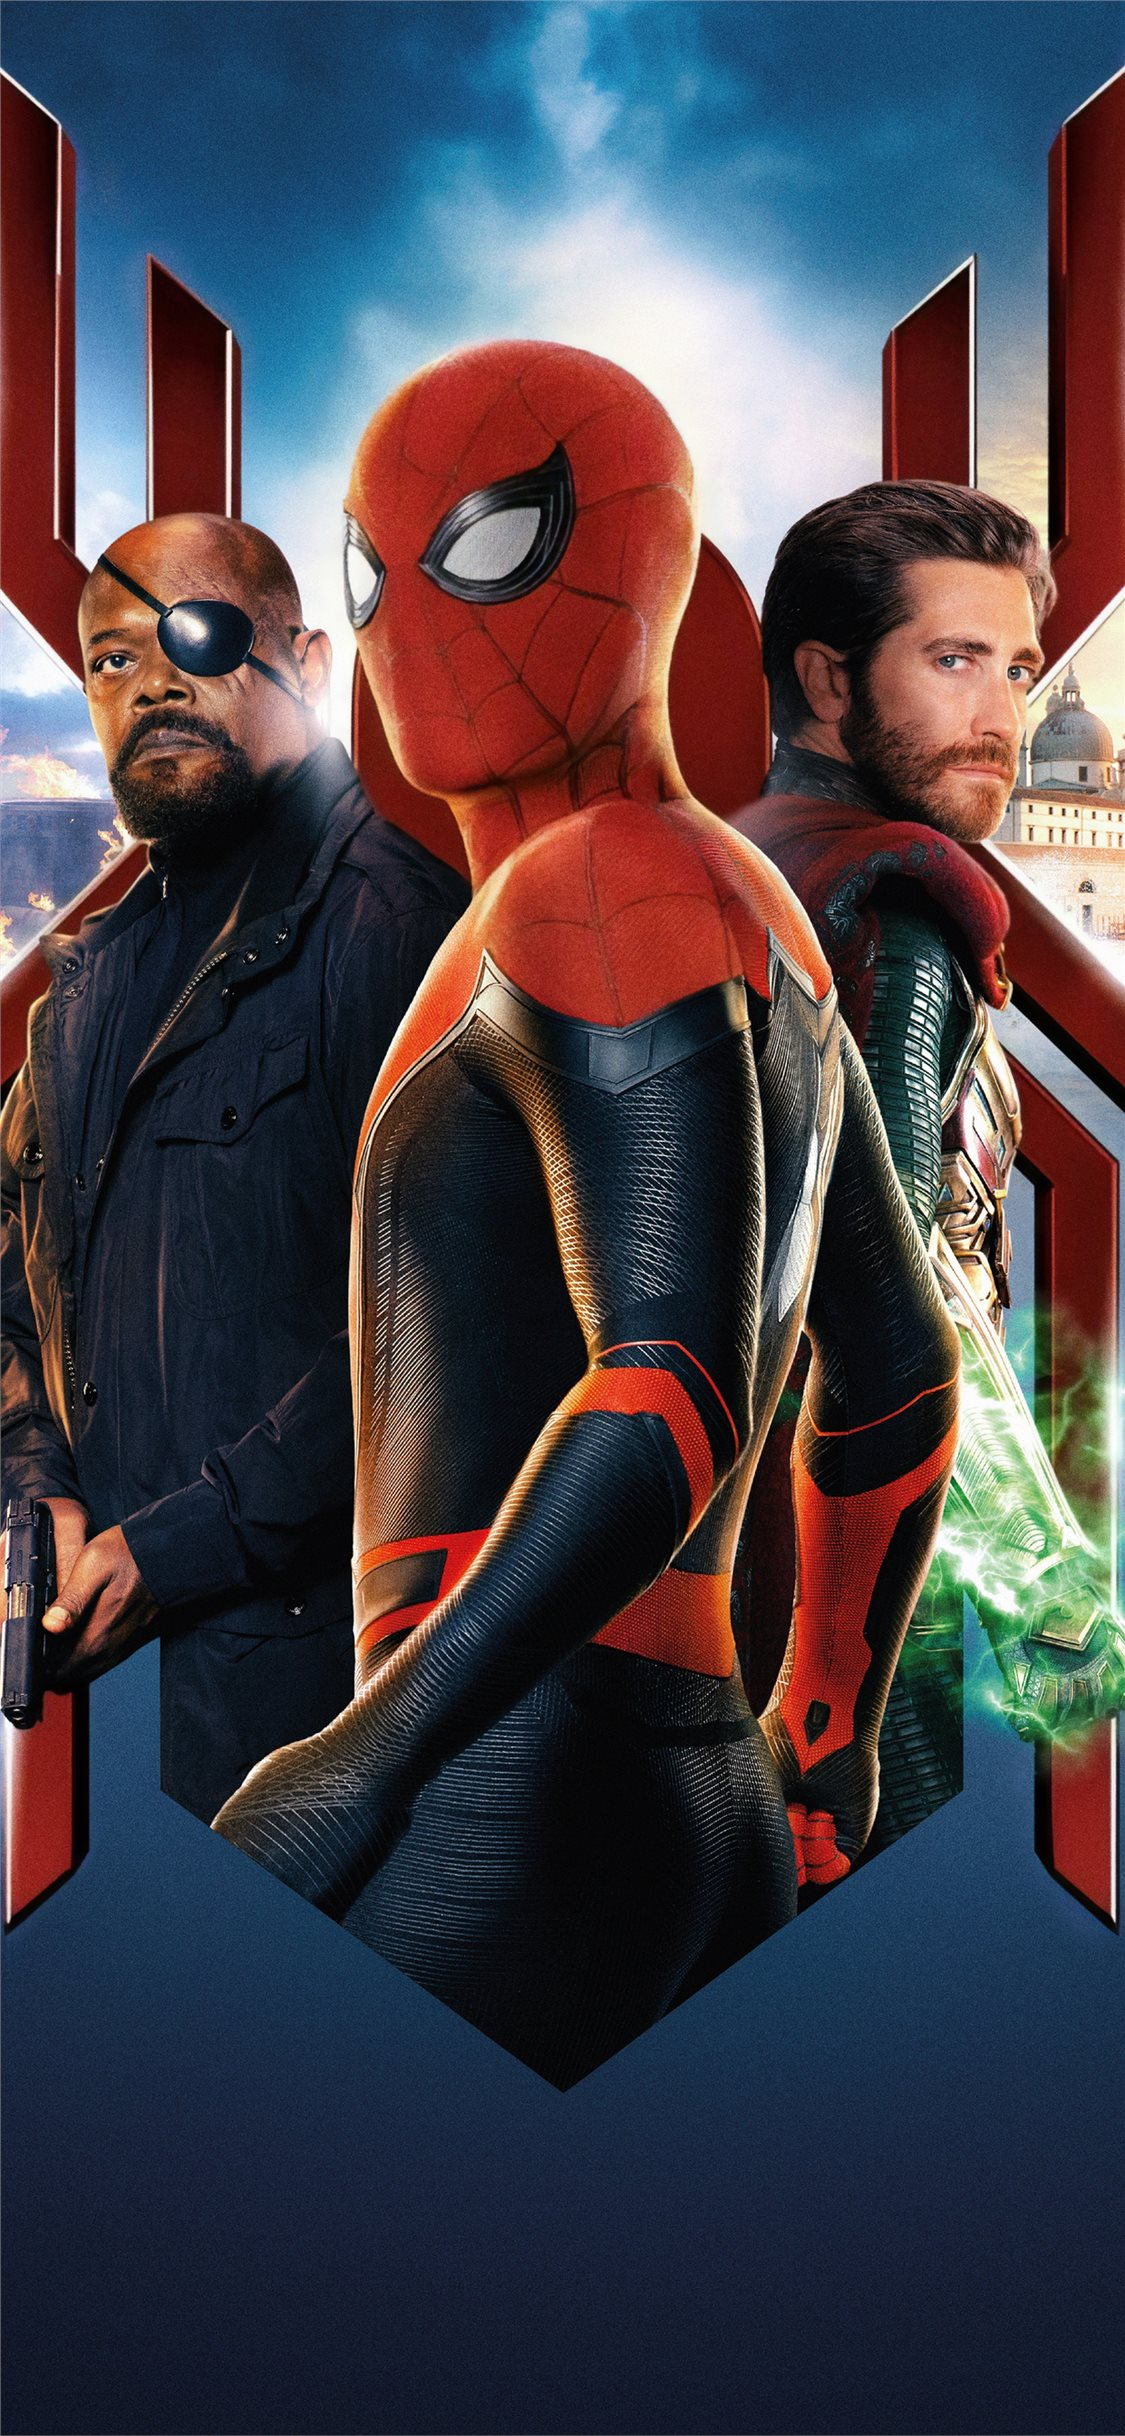 Spiderman Far From Home 2019 Movie Iphone X Wallpapers Free Download